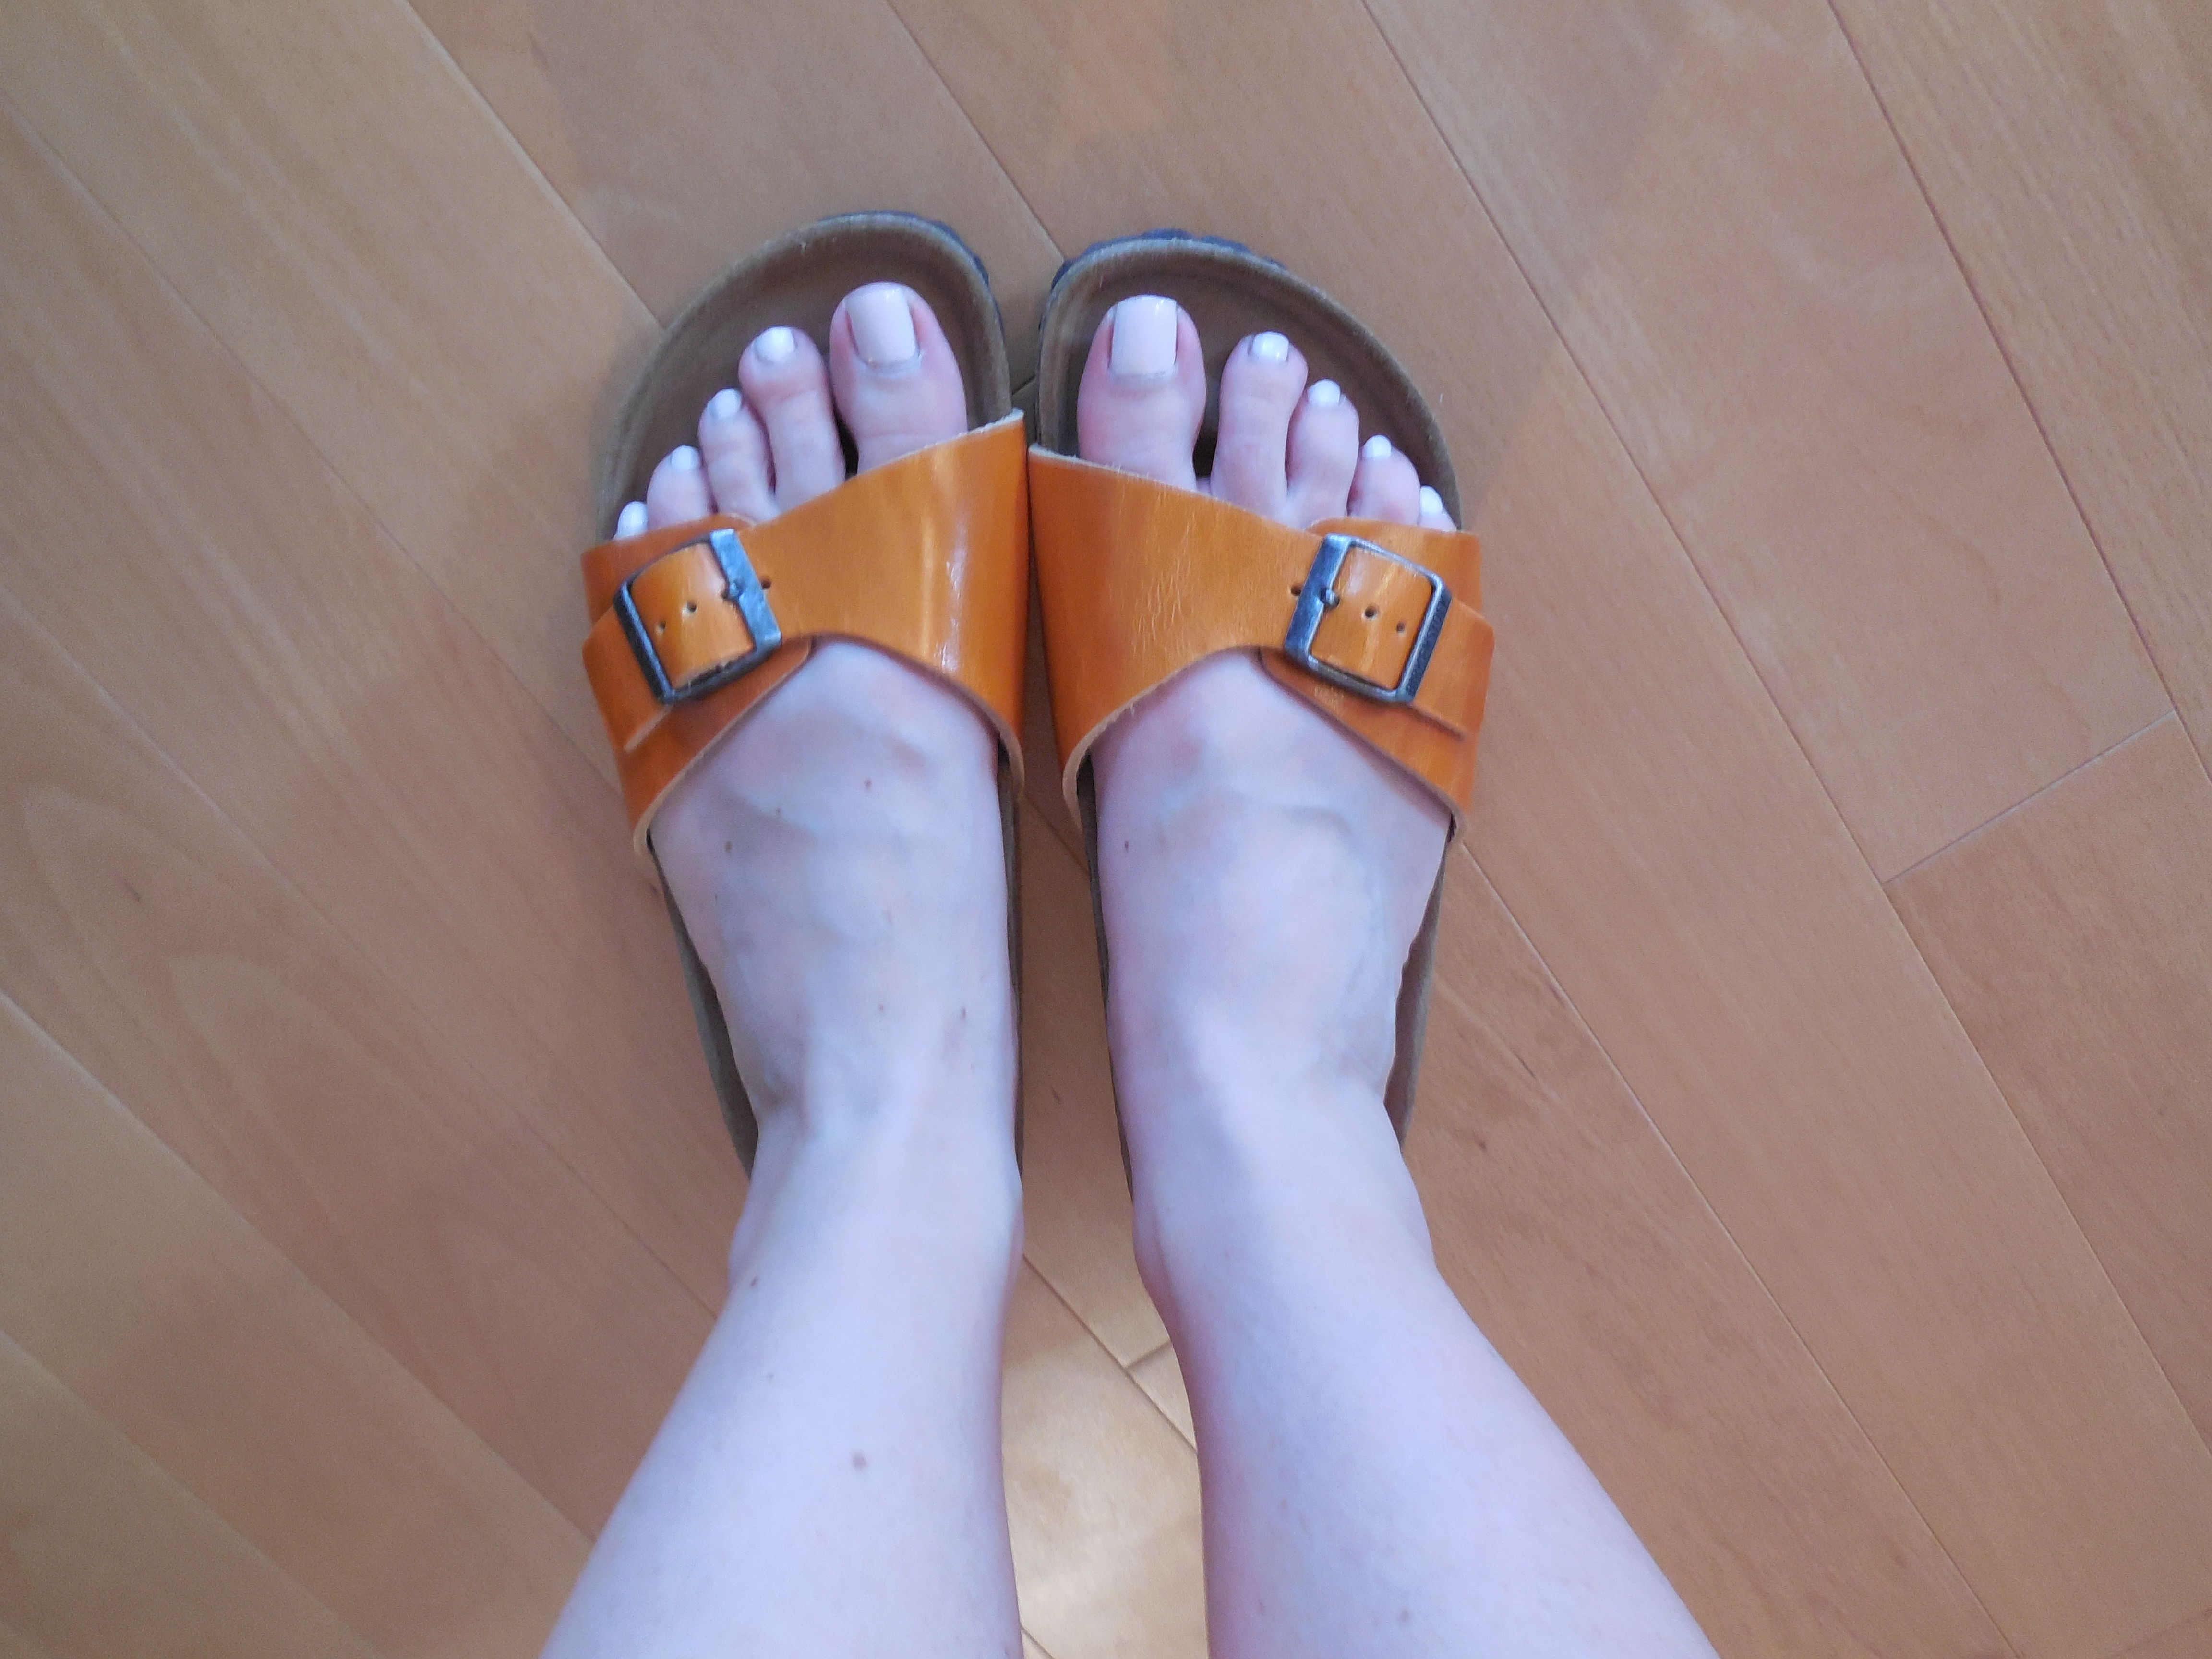 Birkenstocks Are The Best Sandals Married And Marathoning